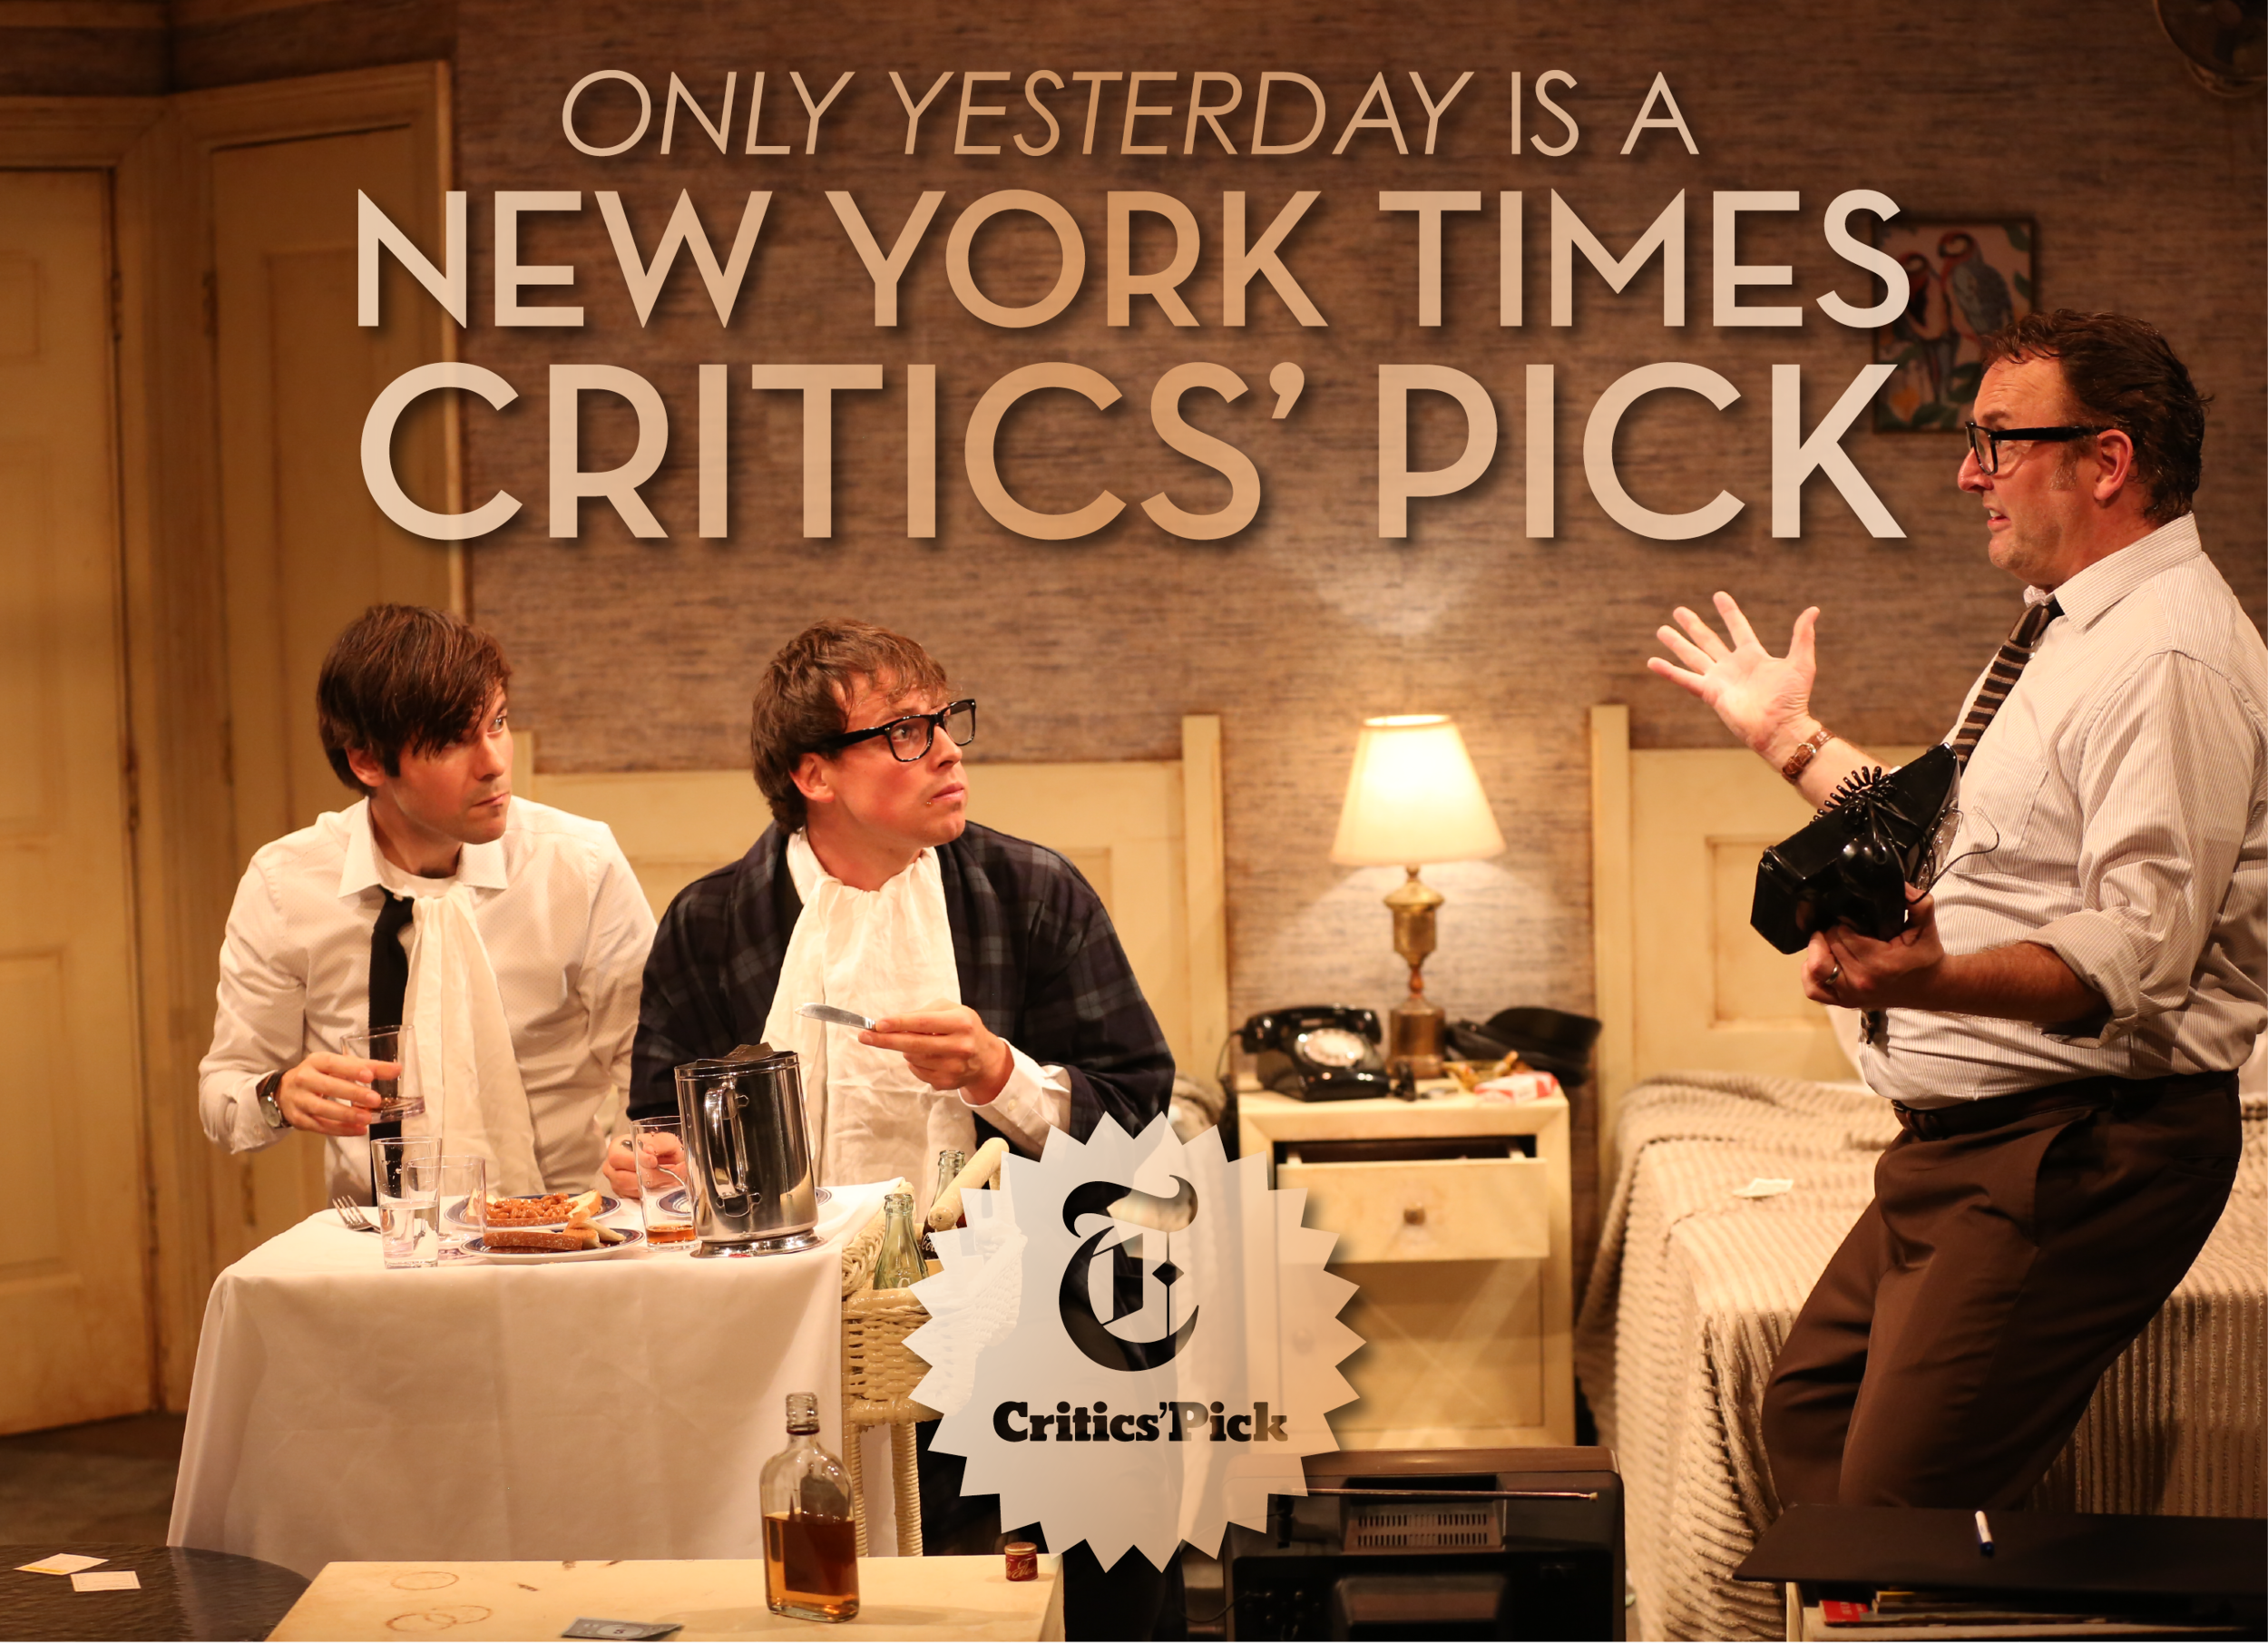 Tommy plays Paul McCartney in this sold-out, NYT Critics' Pick new play Off-Broadway! The limited engagement run plays through Sept. 29 at 59e59.